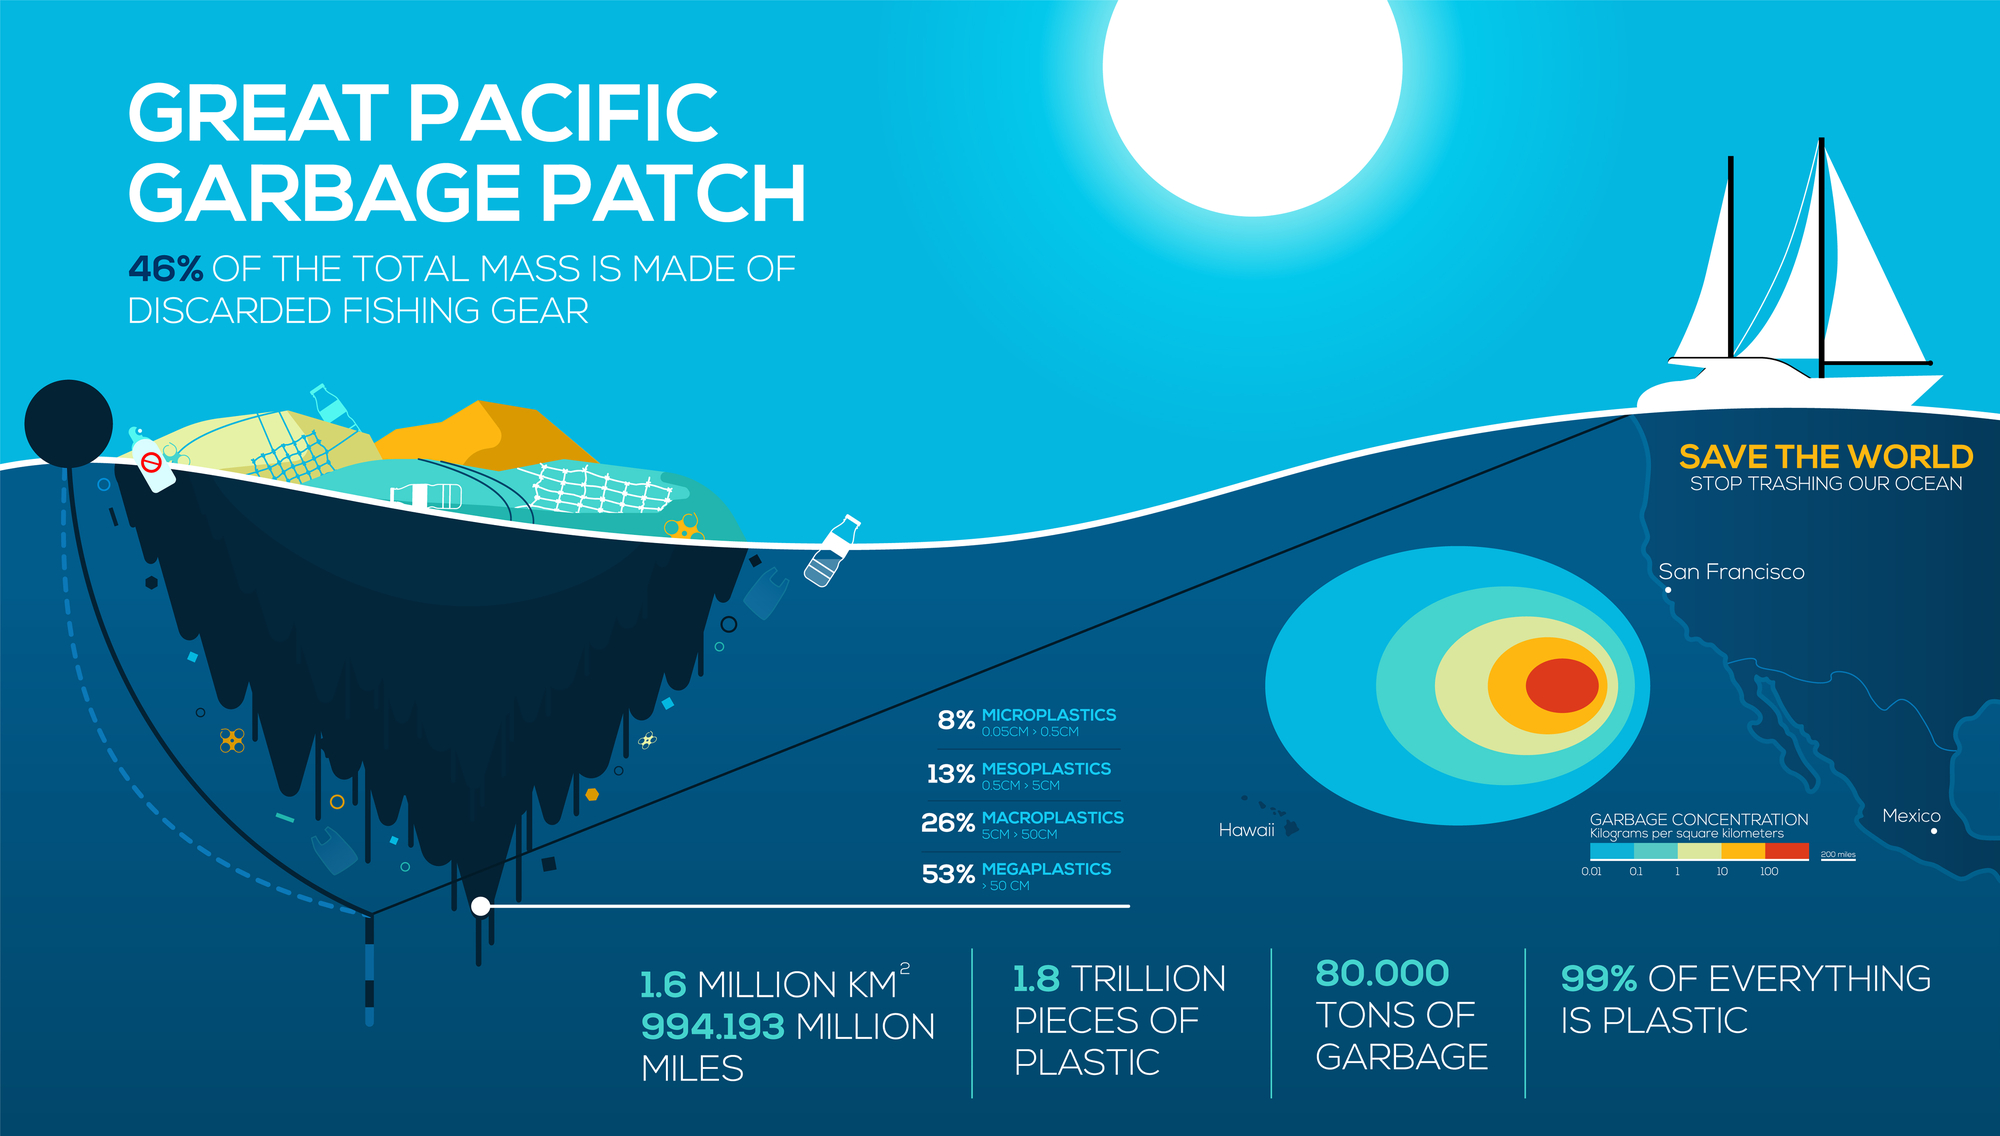 Great Pacific Garbage Patch Image